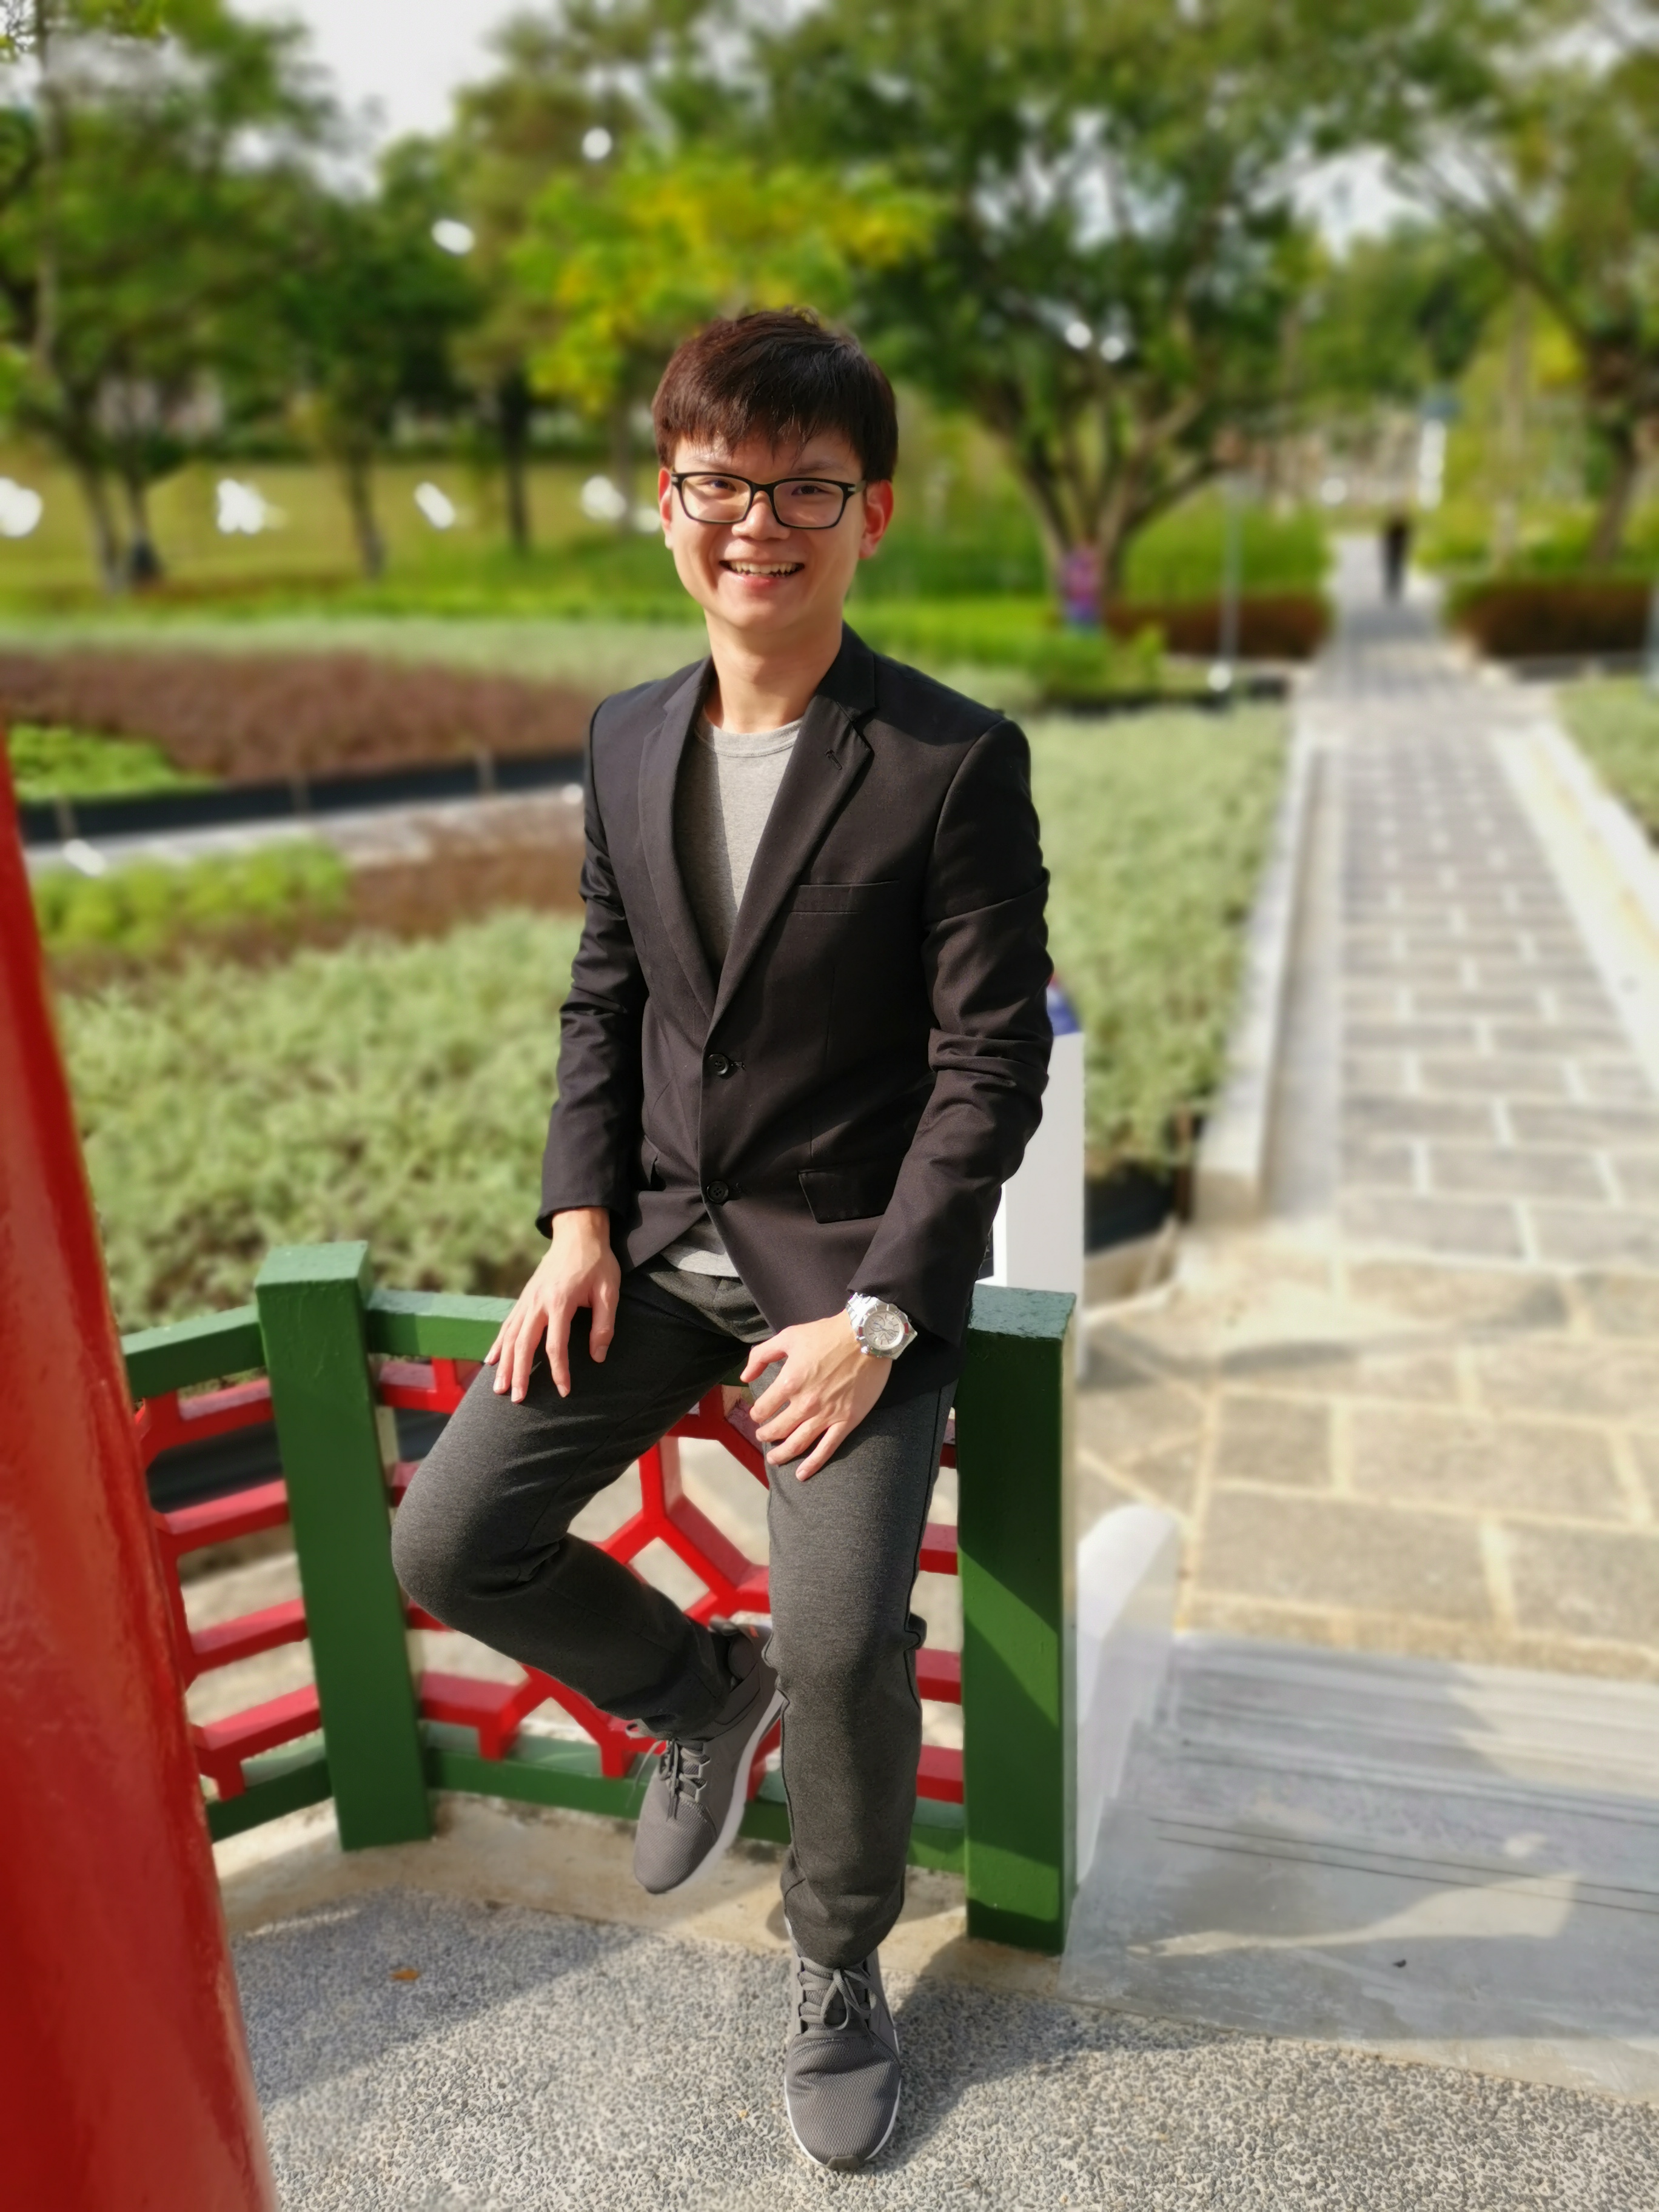 Finding Financial Freedom: 25 Year Old Options Investor Daniel Ang Harnesses Fundamental Analysis & Options Strategies with Great Success